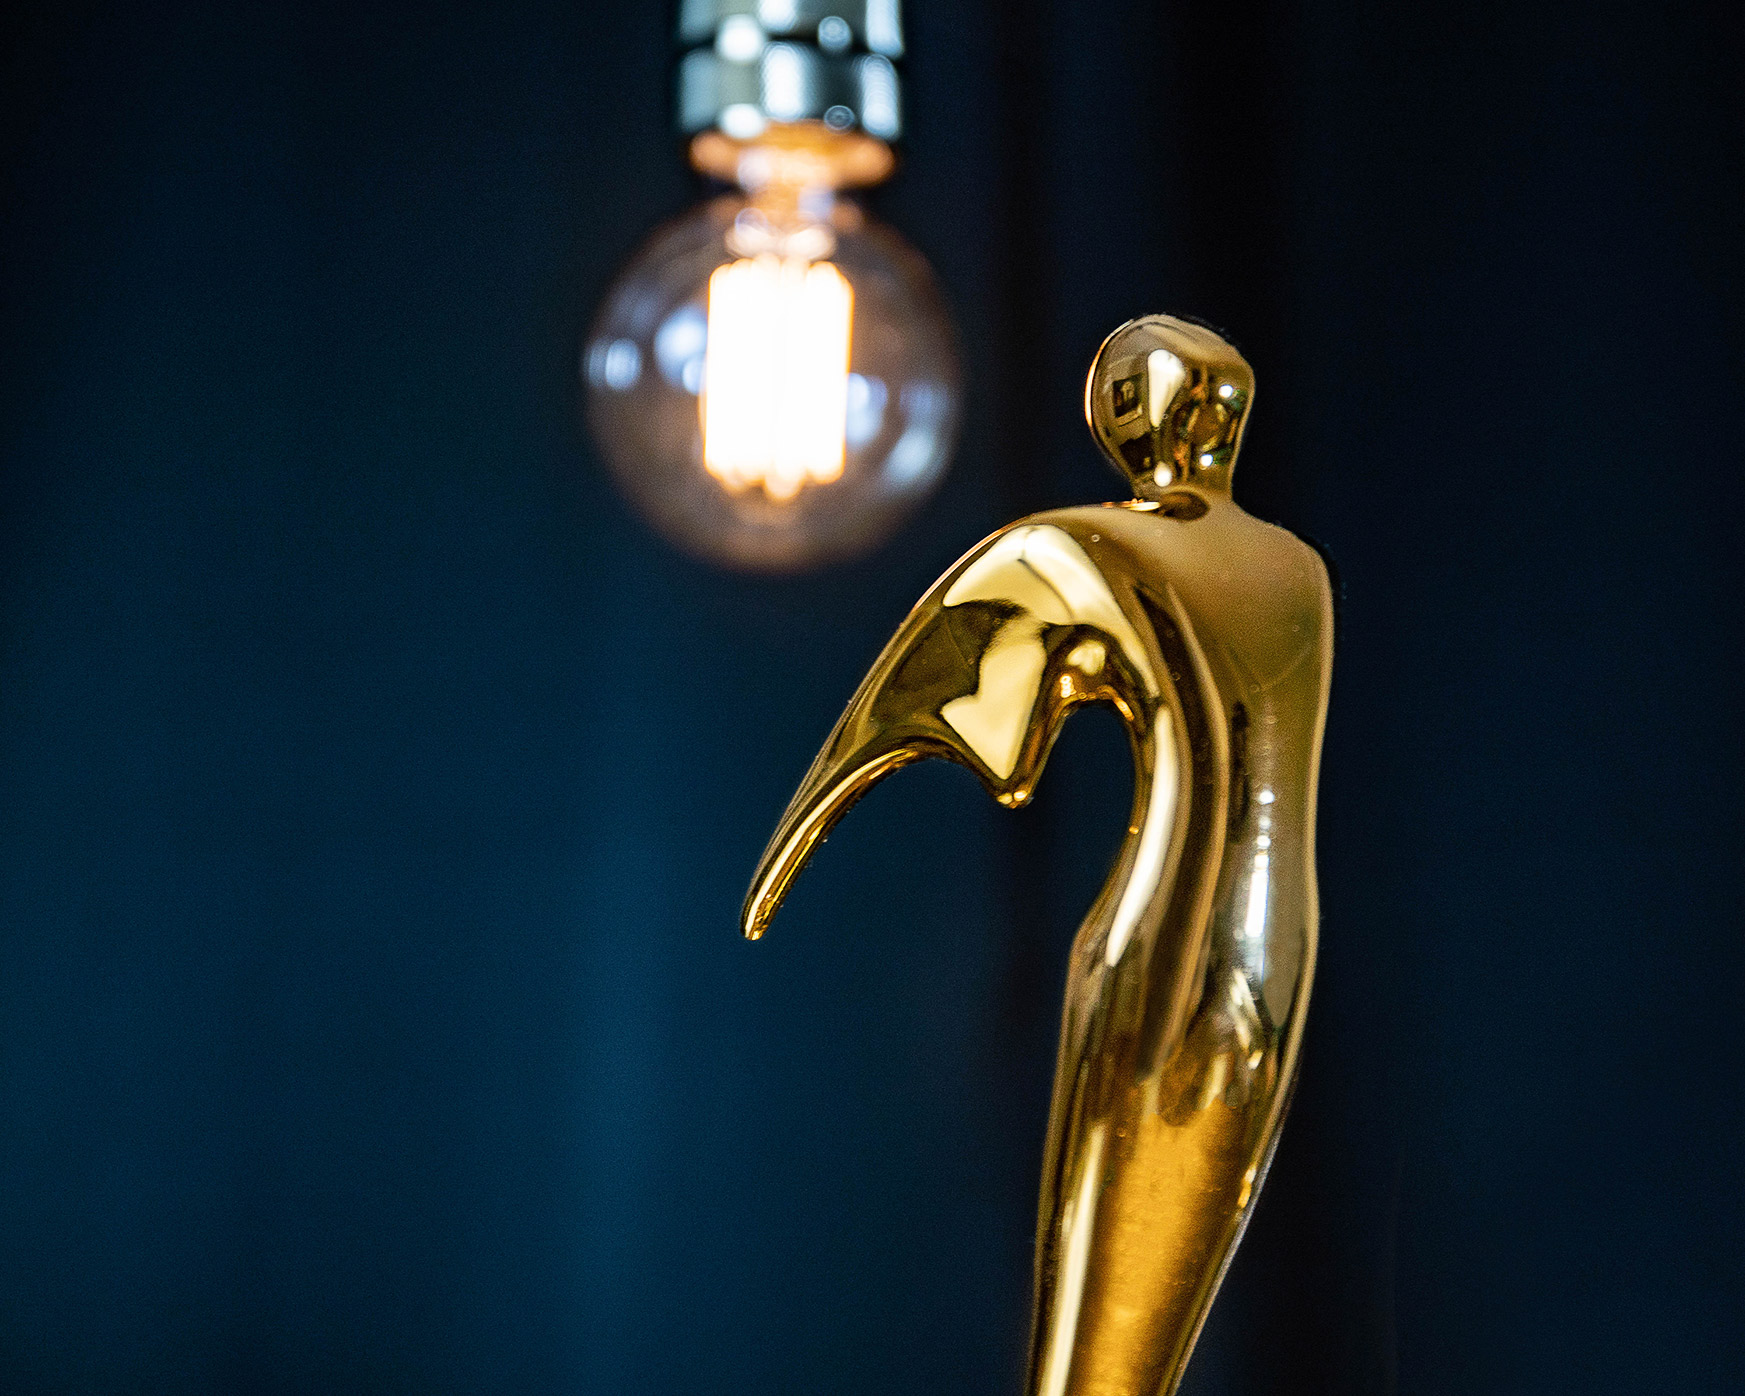 Erudite_Pictures_Award_Winning_Content_Strategy_Consultancy_Telly_Award_Ka-Lok_Ho.jpg